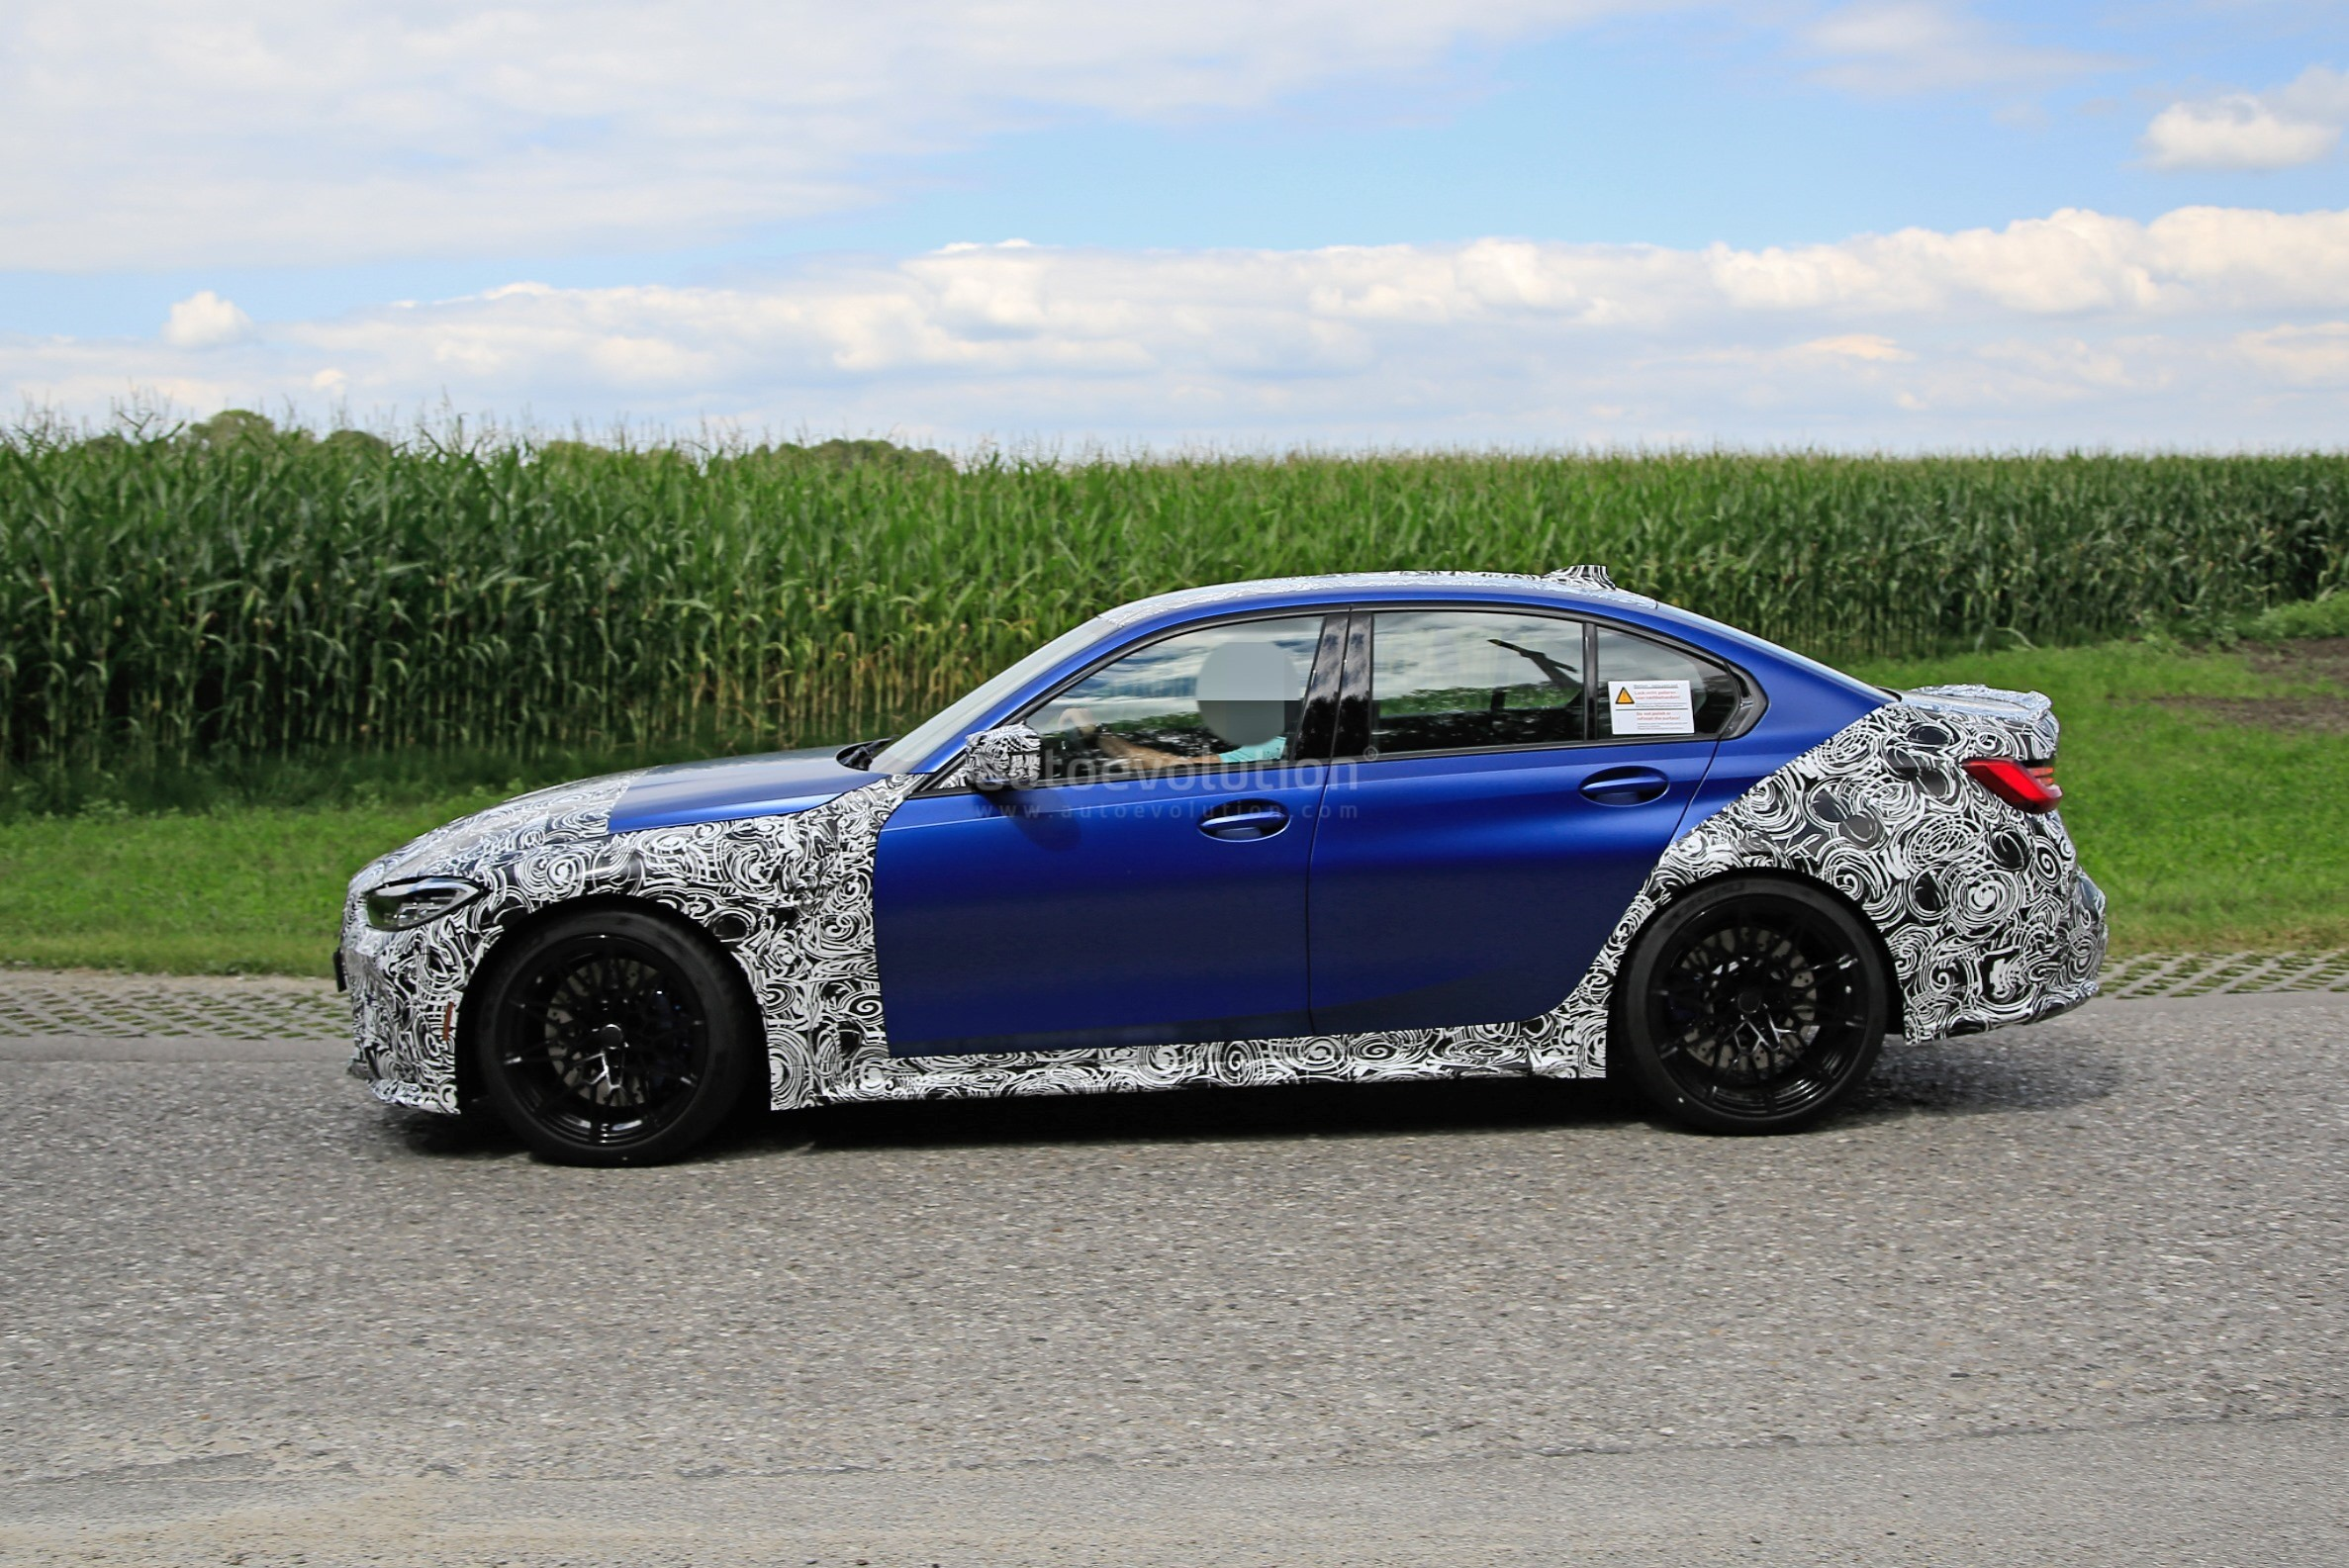 g80-bmw-m3-shows-ginormous-kidney-grille-in-new-spy-phots_5